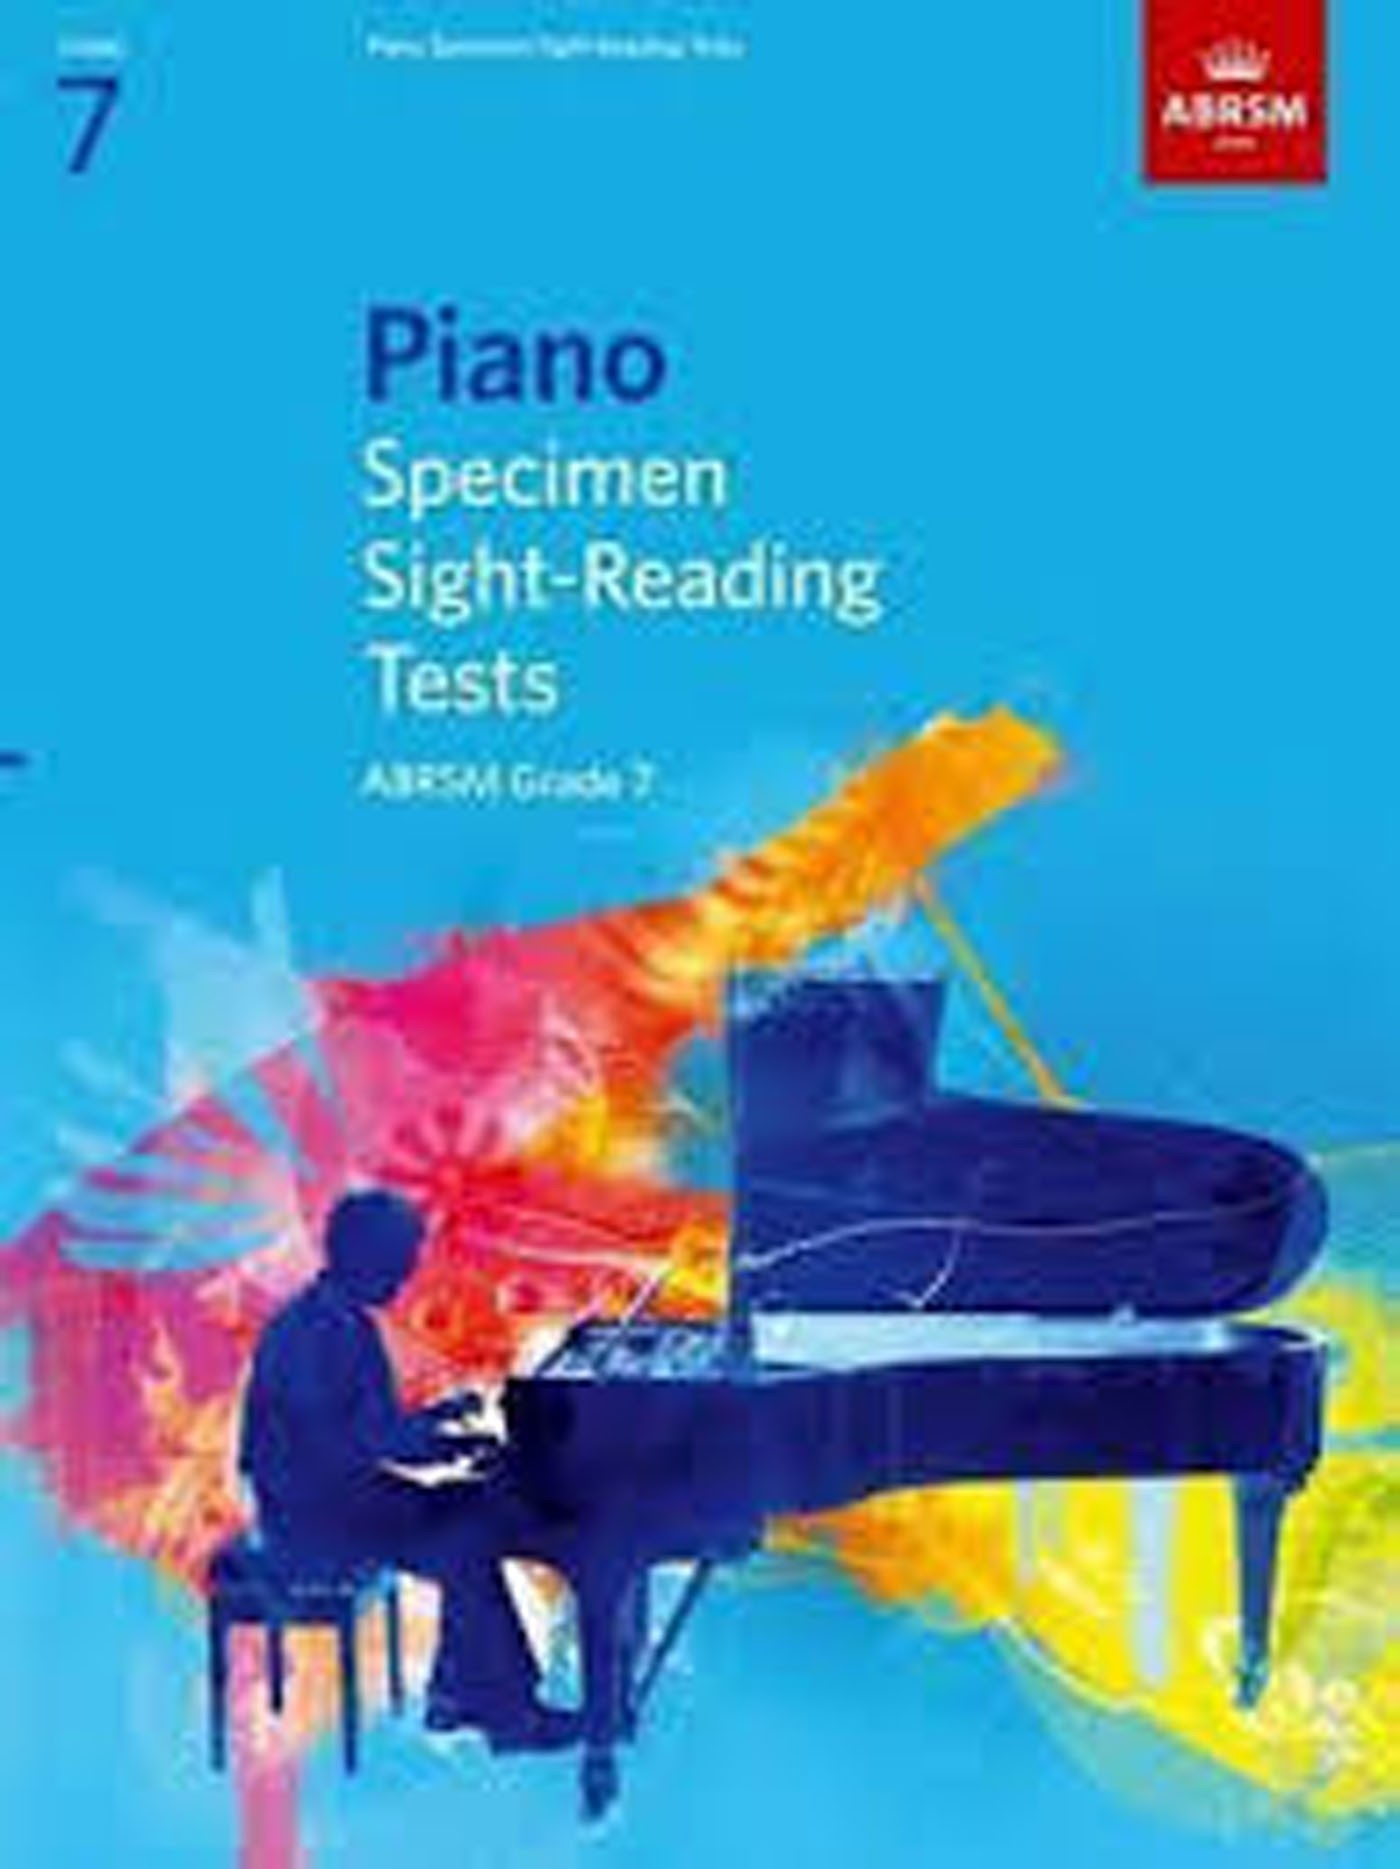 Piano Specimen Sight-Reading Tests ABRSM Grade 7 from 2009 Book S135